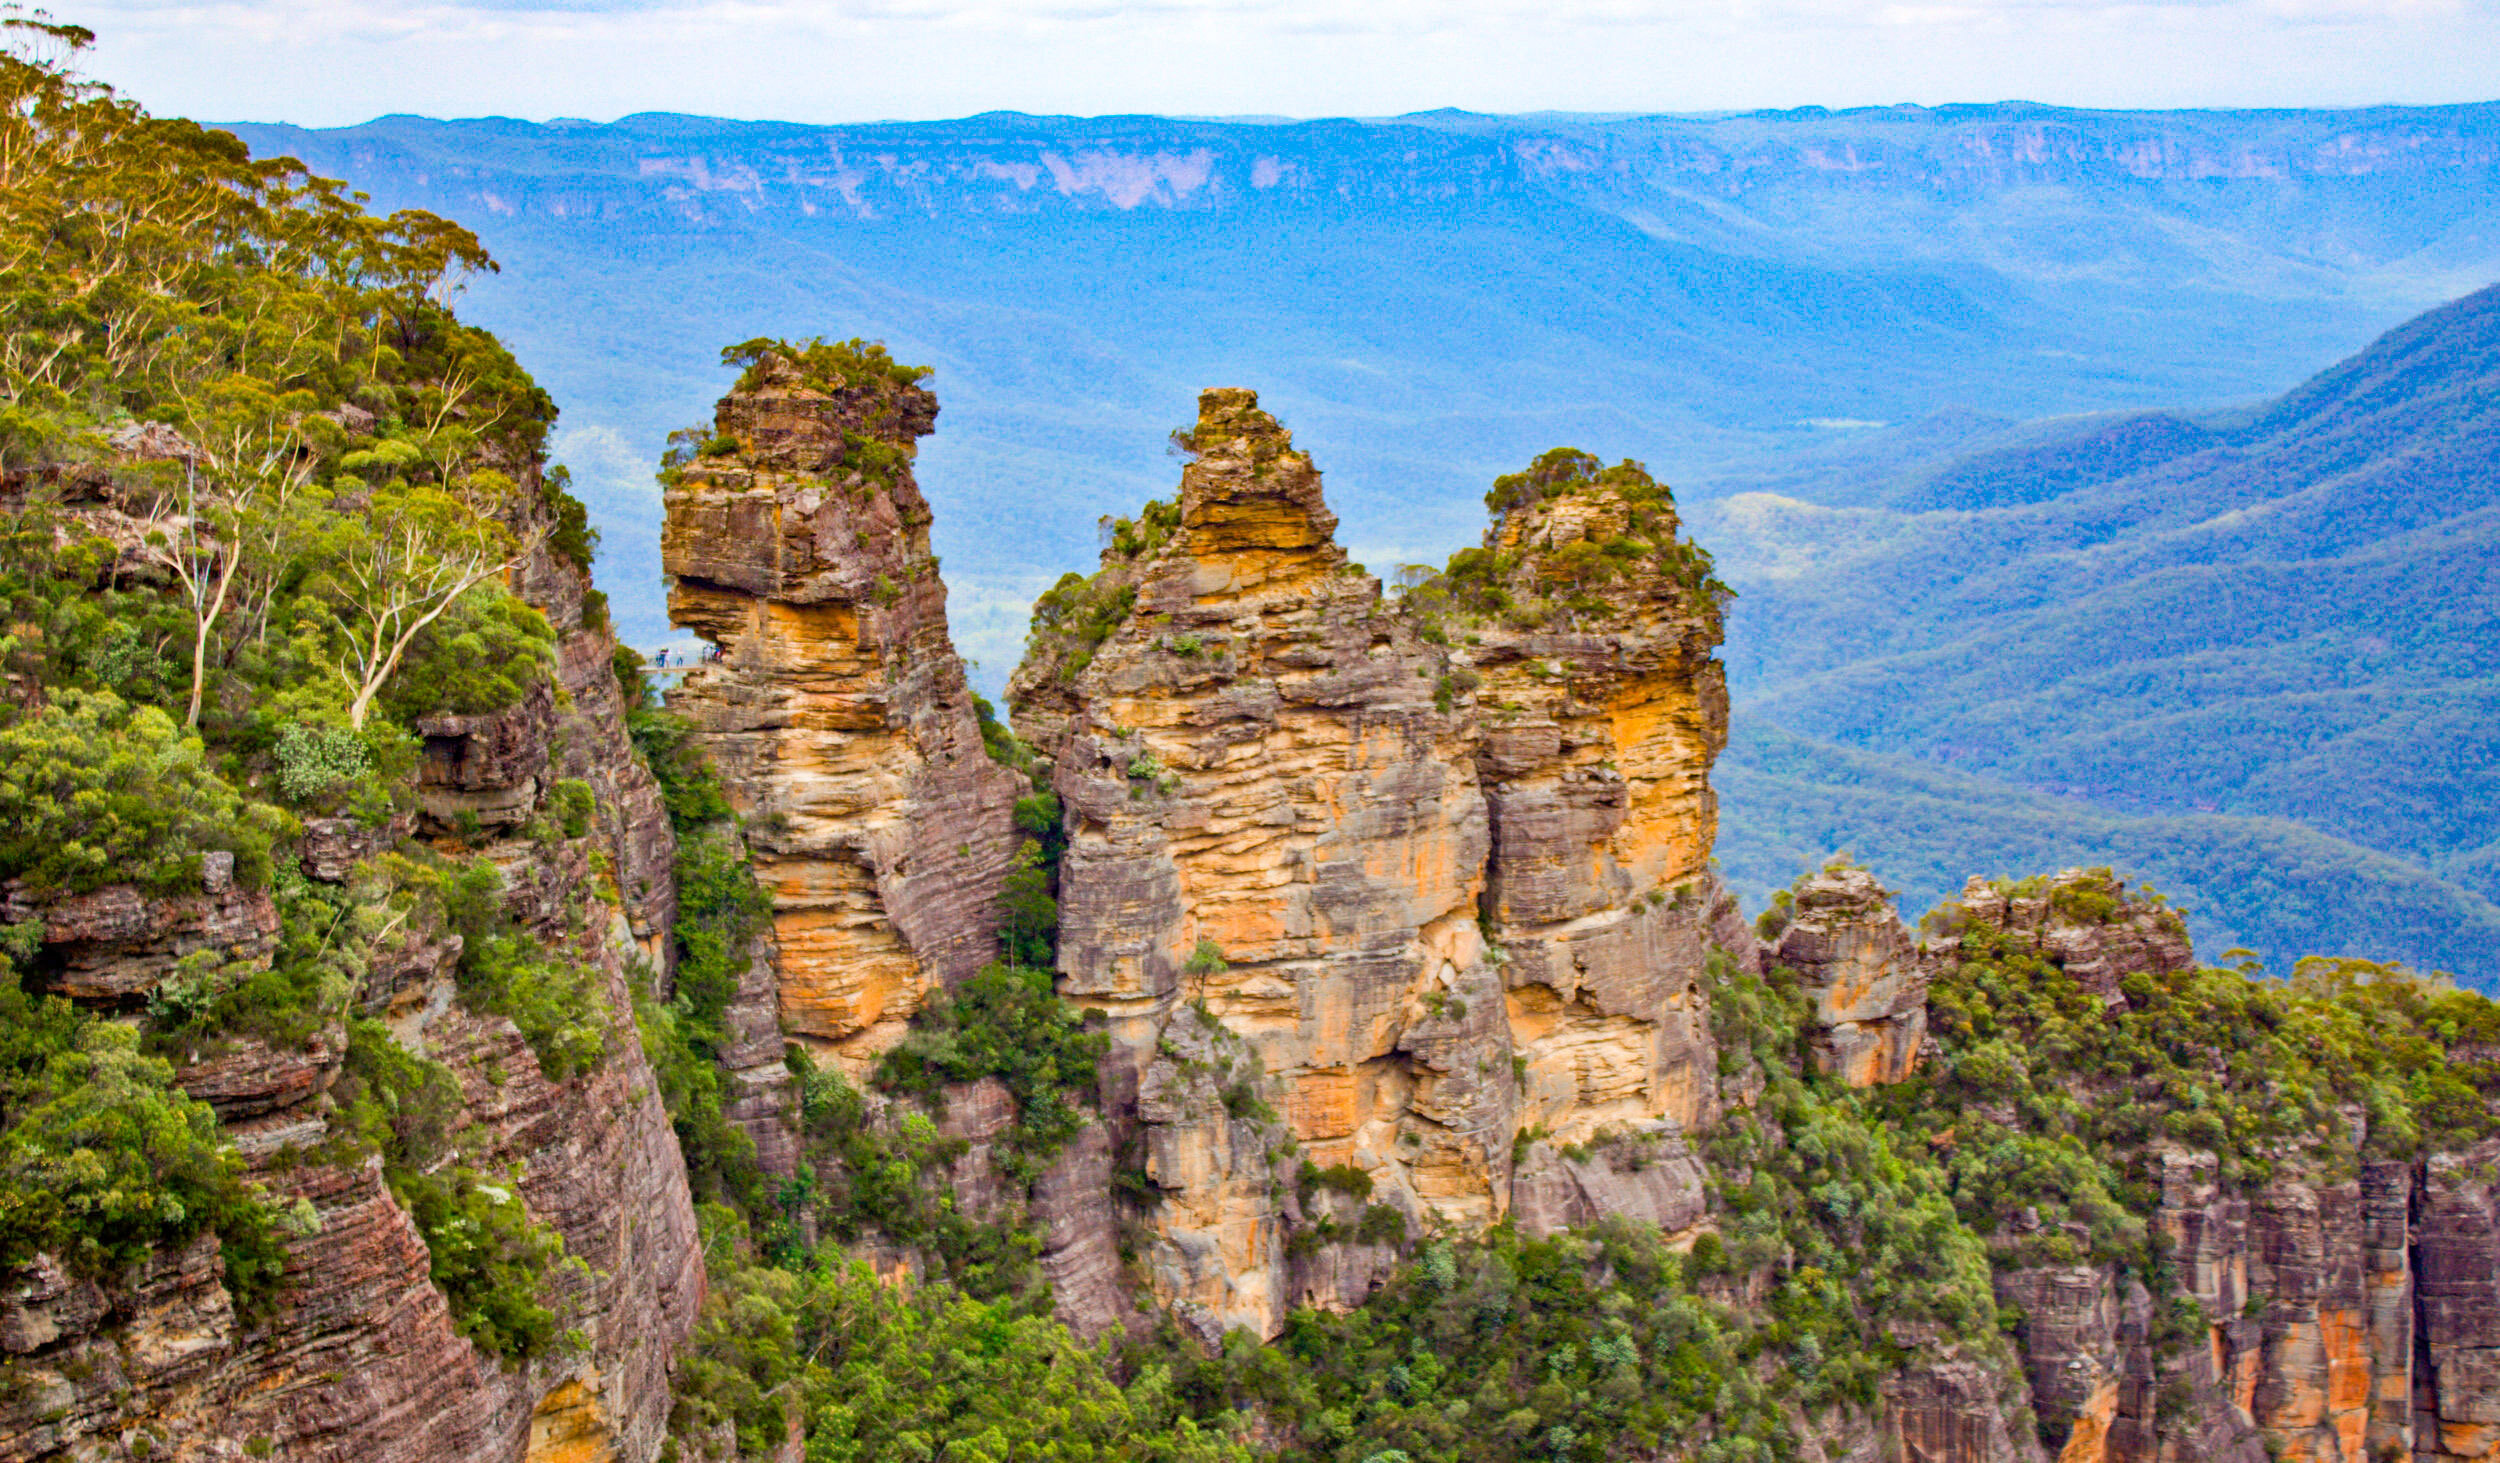 Australia_Sydney-blue_mountains_3_sisters.jpg